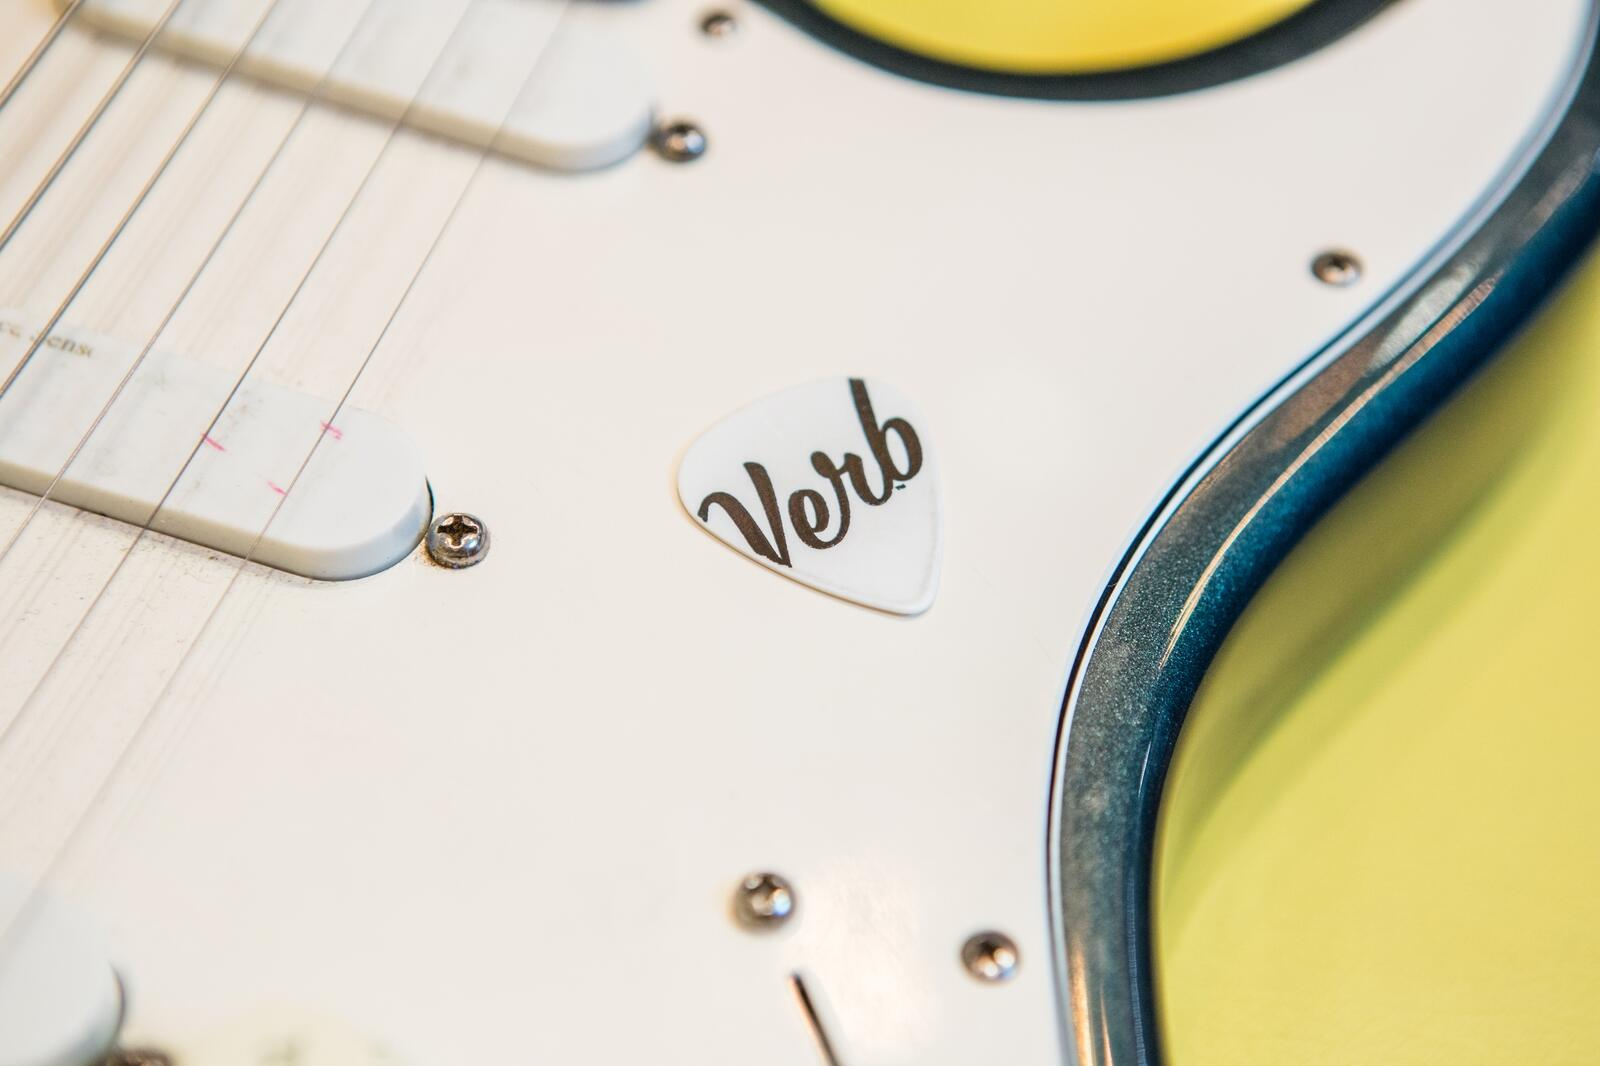 Guitar body detail shot with Verb branded guitar pick